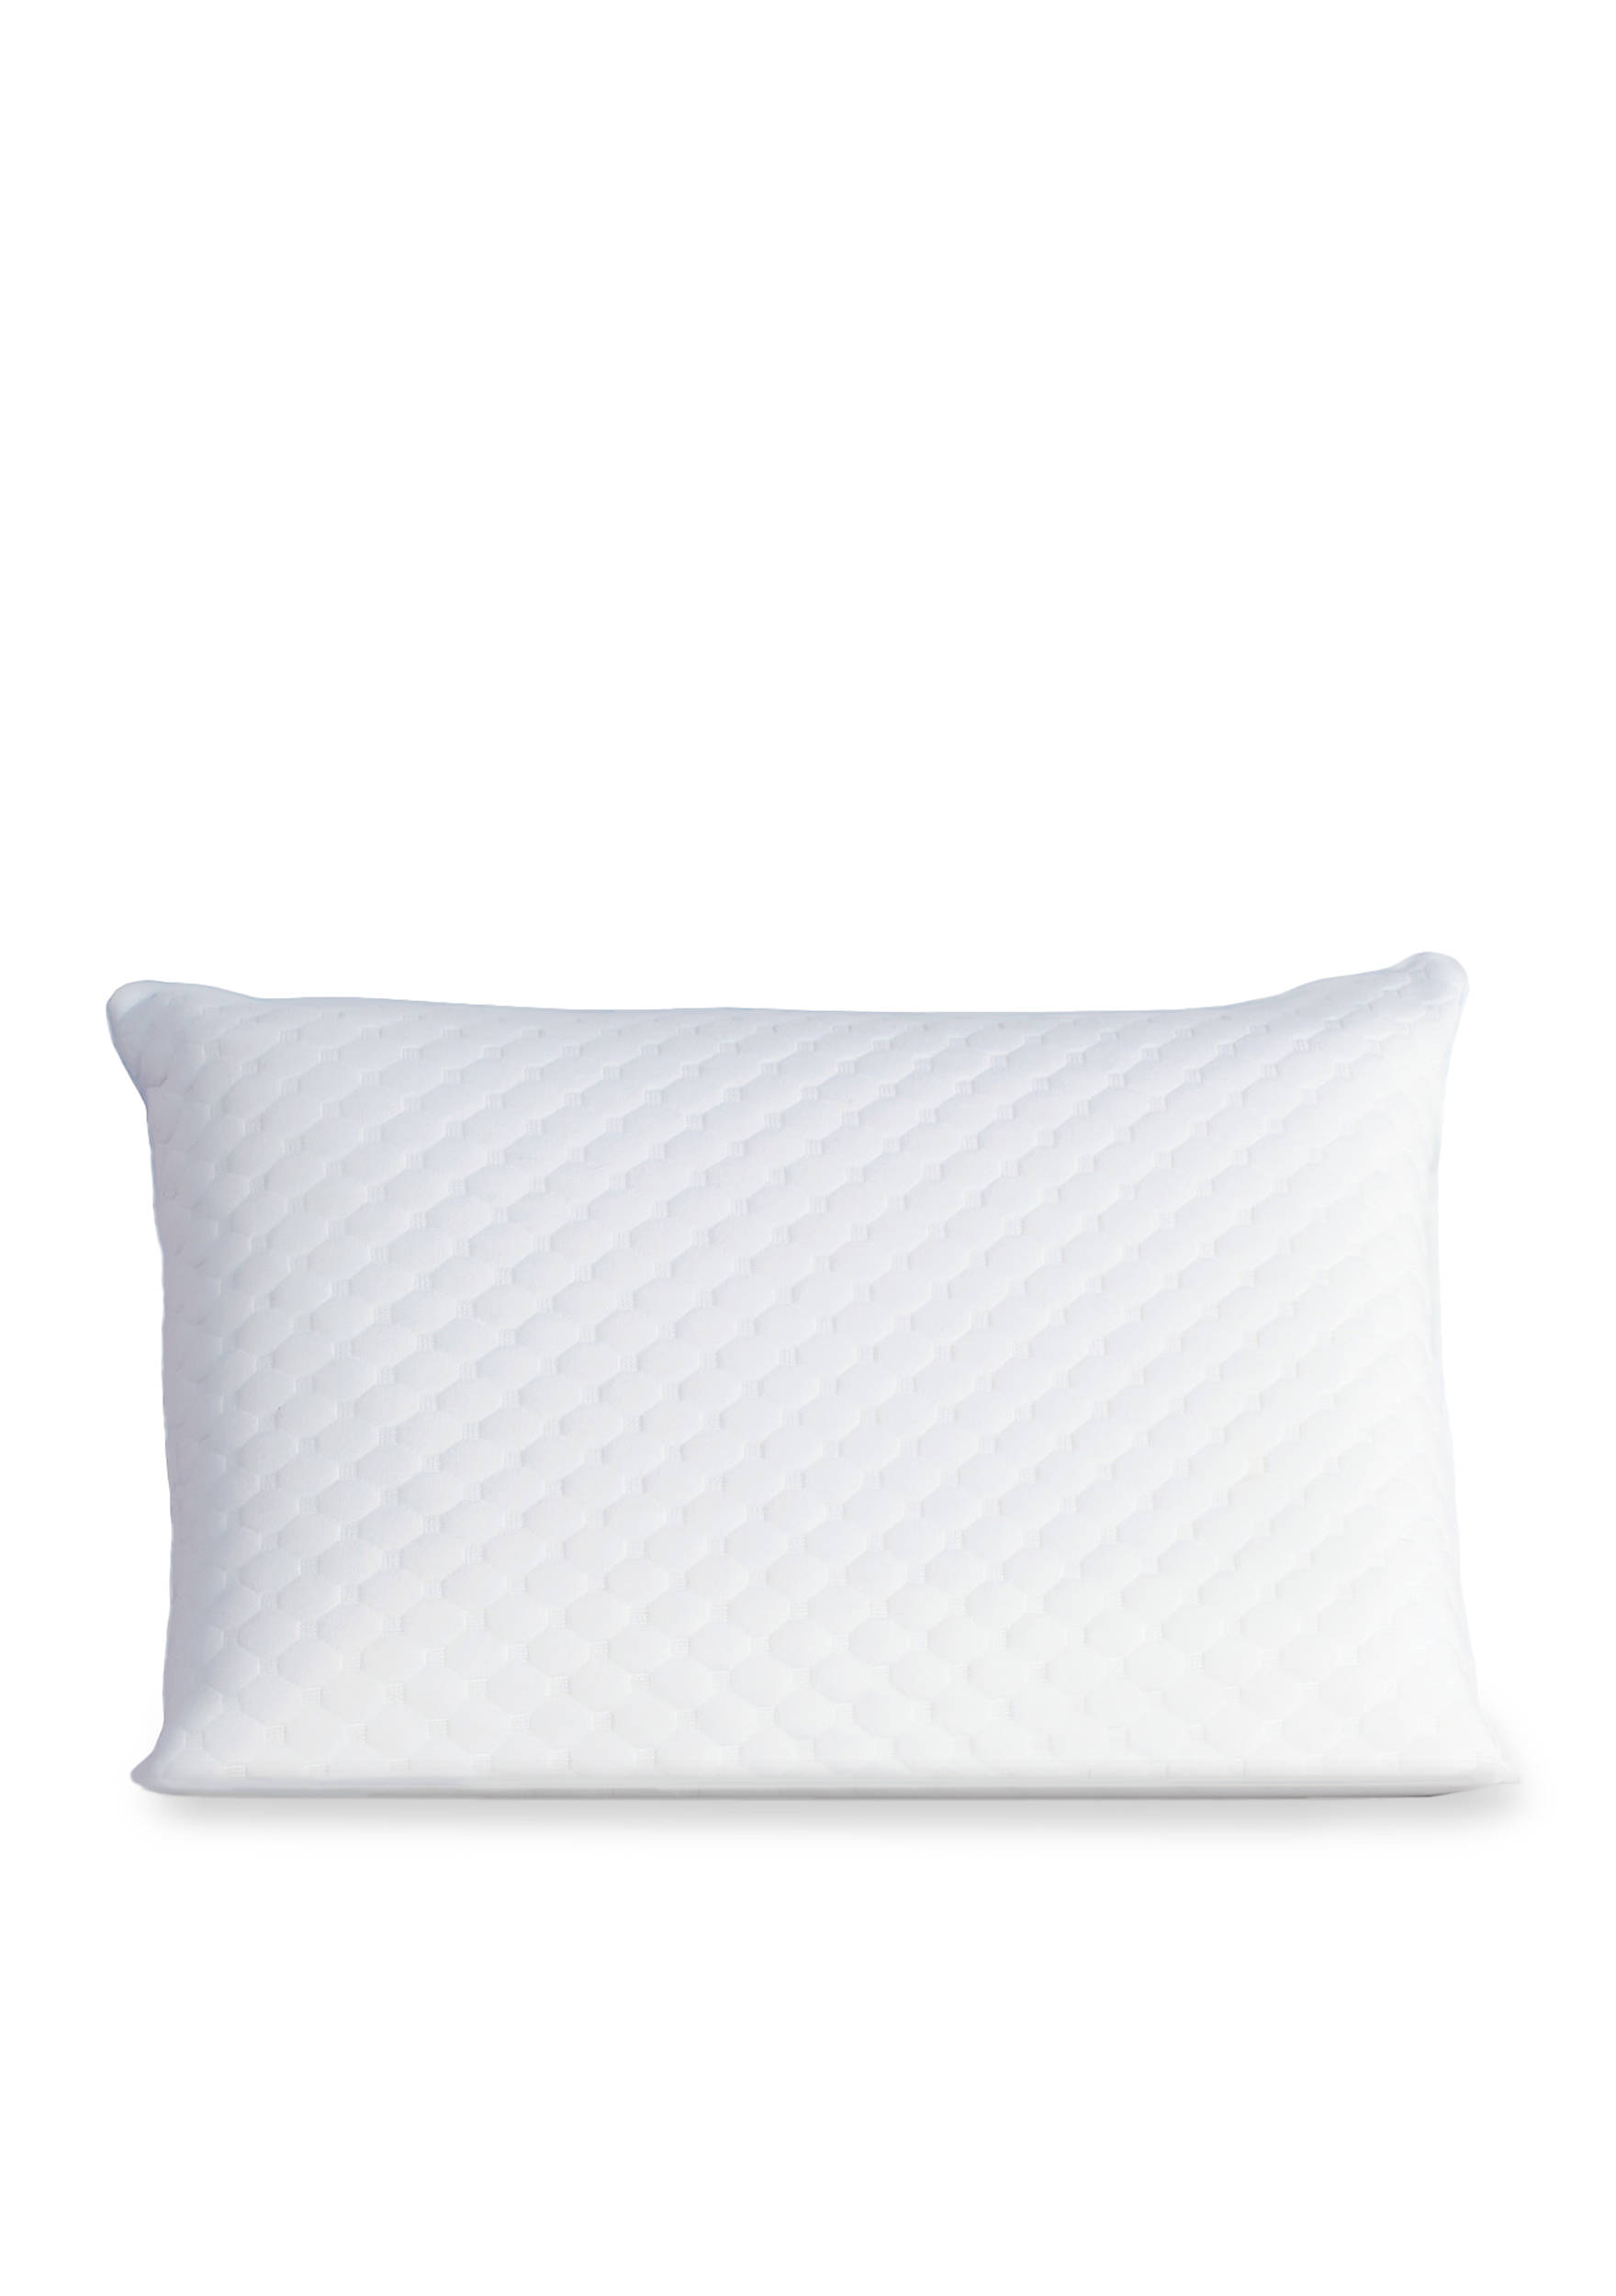 bed foam comfort revolution products memory pillow comforter molded contour